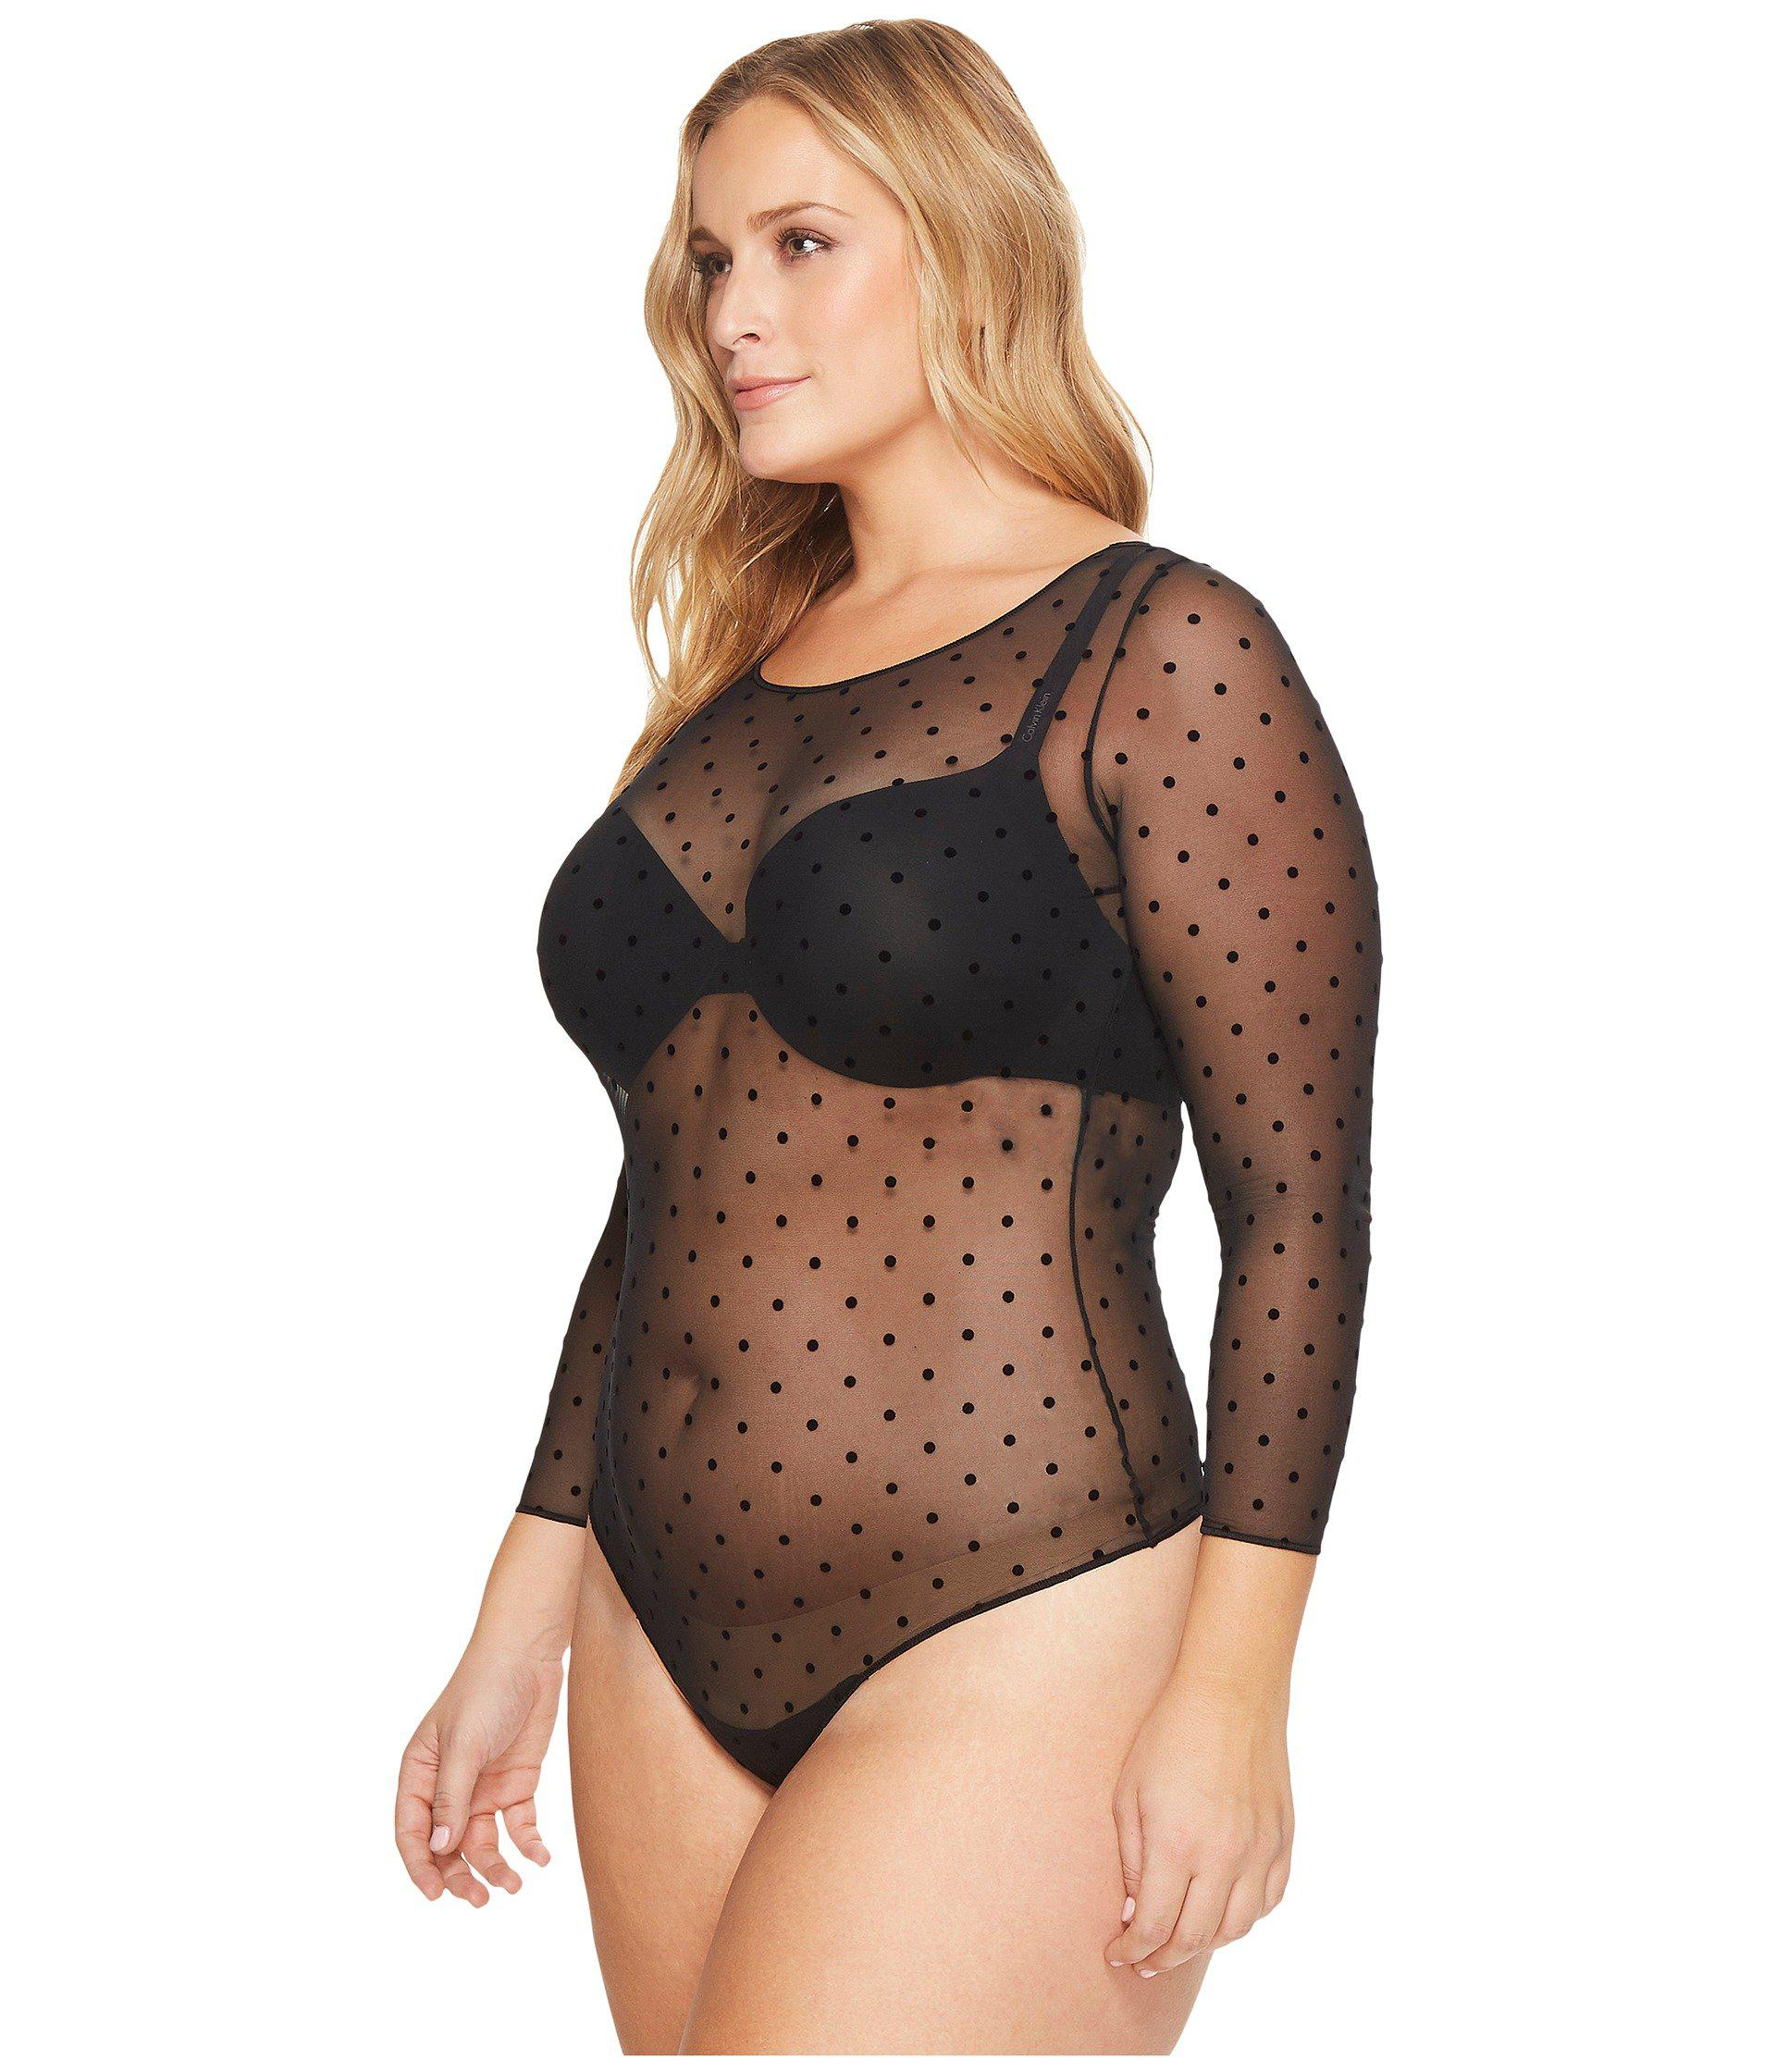 e3b7770e05 Spanx Plus Size Sheer Fashion Mesh Thong Bodysuit (very Black ...